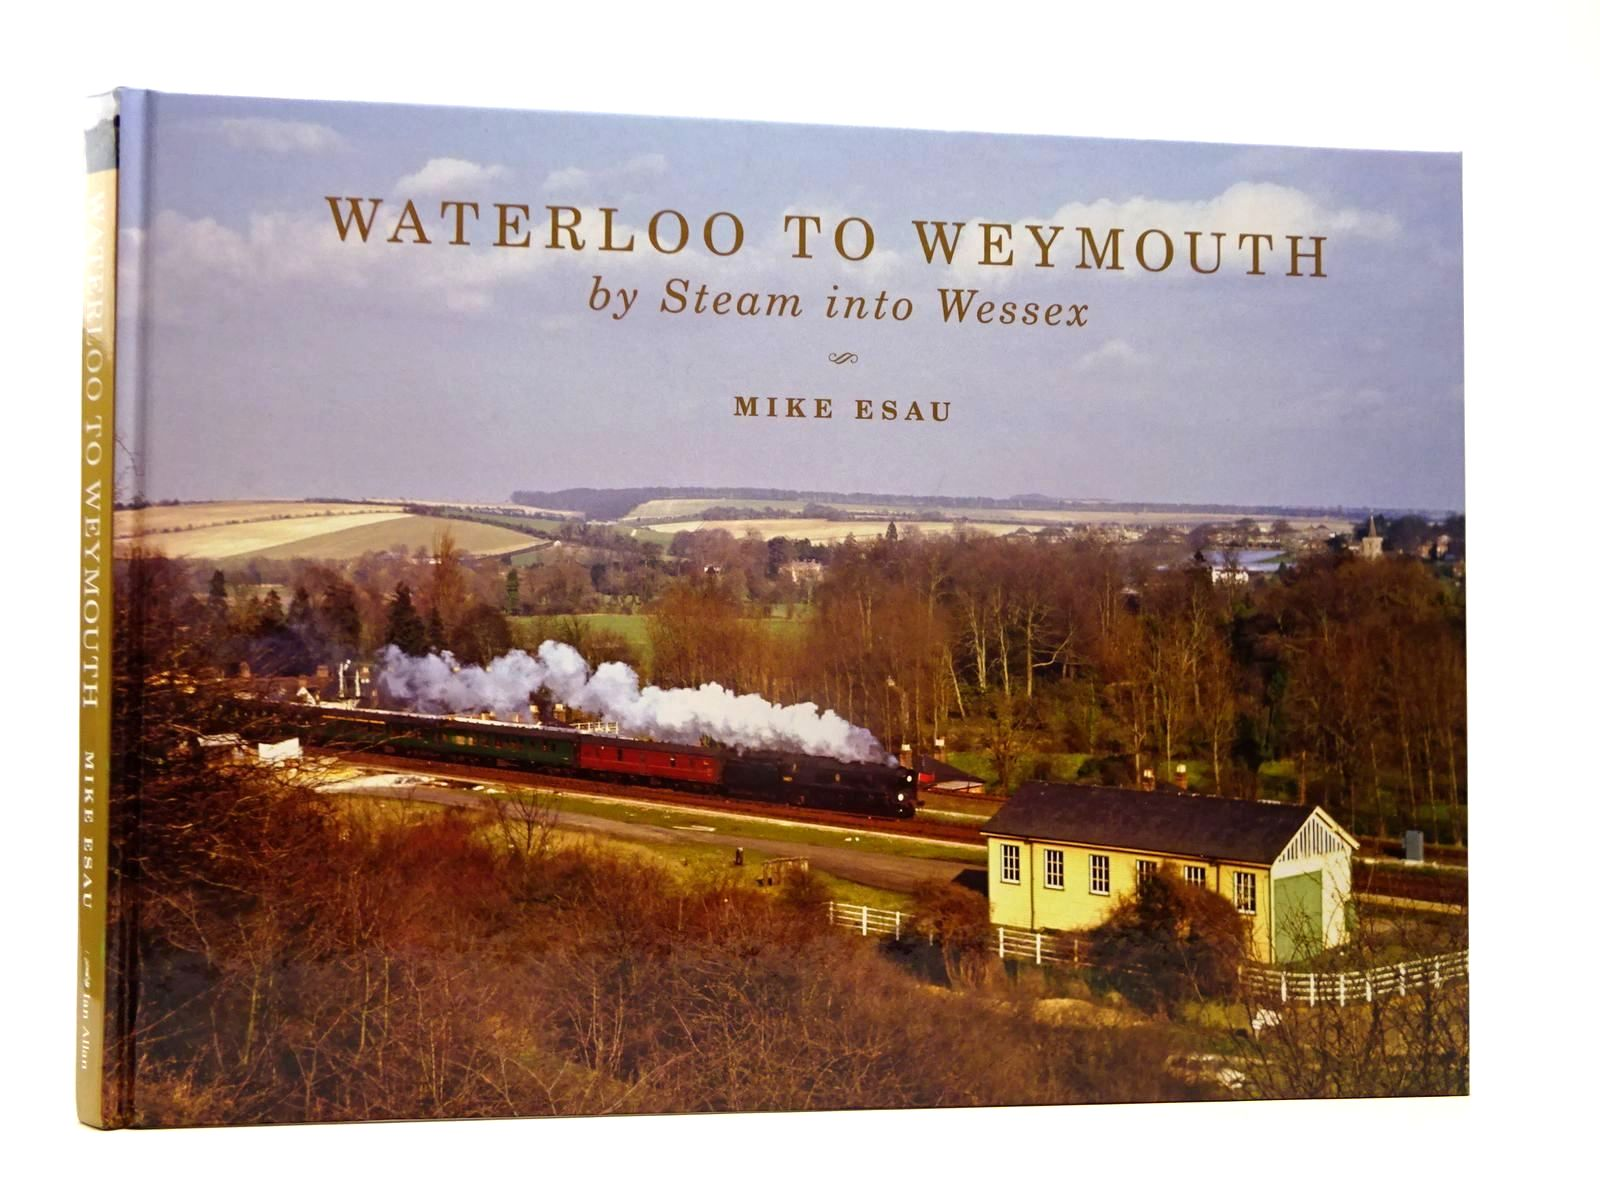 Photo of WATERLOO TO WEYMOUTH BY STEAM INTO WESSEX written by Esau, Mike published by Ian Allan (STOCK CODE: 2130112)  for sale by Stella & Rose's Books